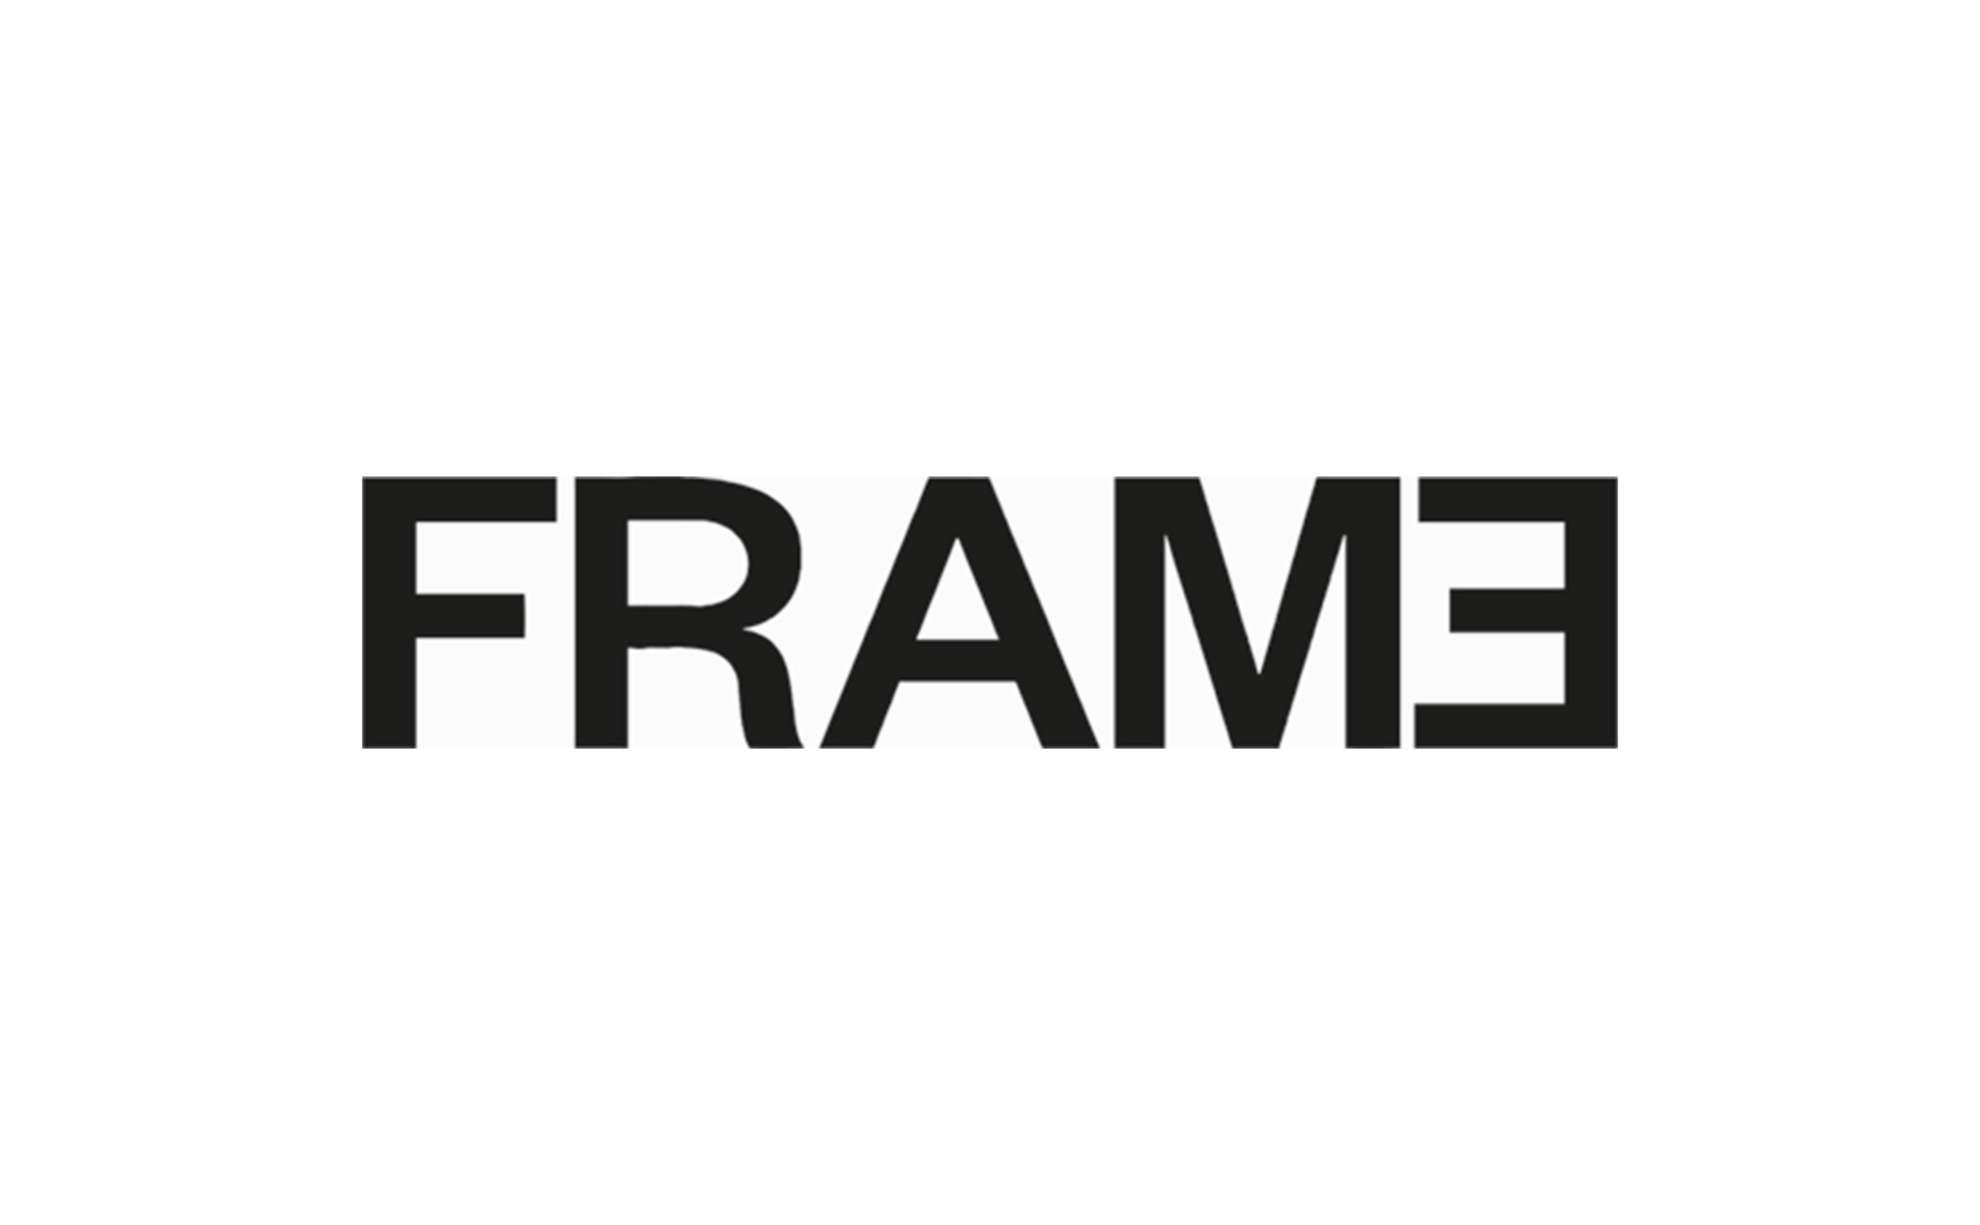 201603 Press FrameCover